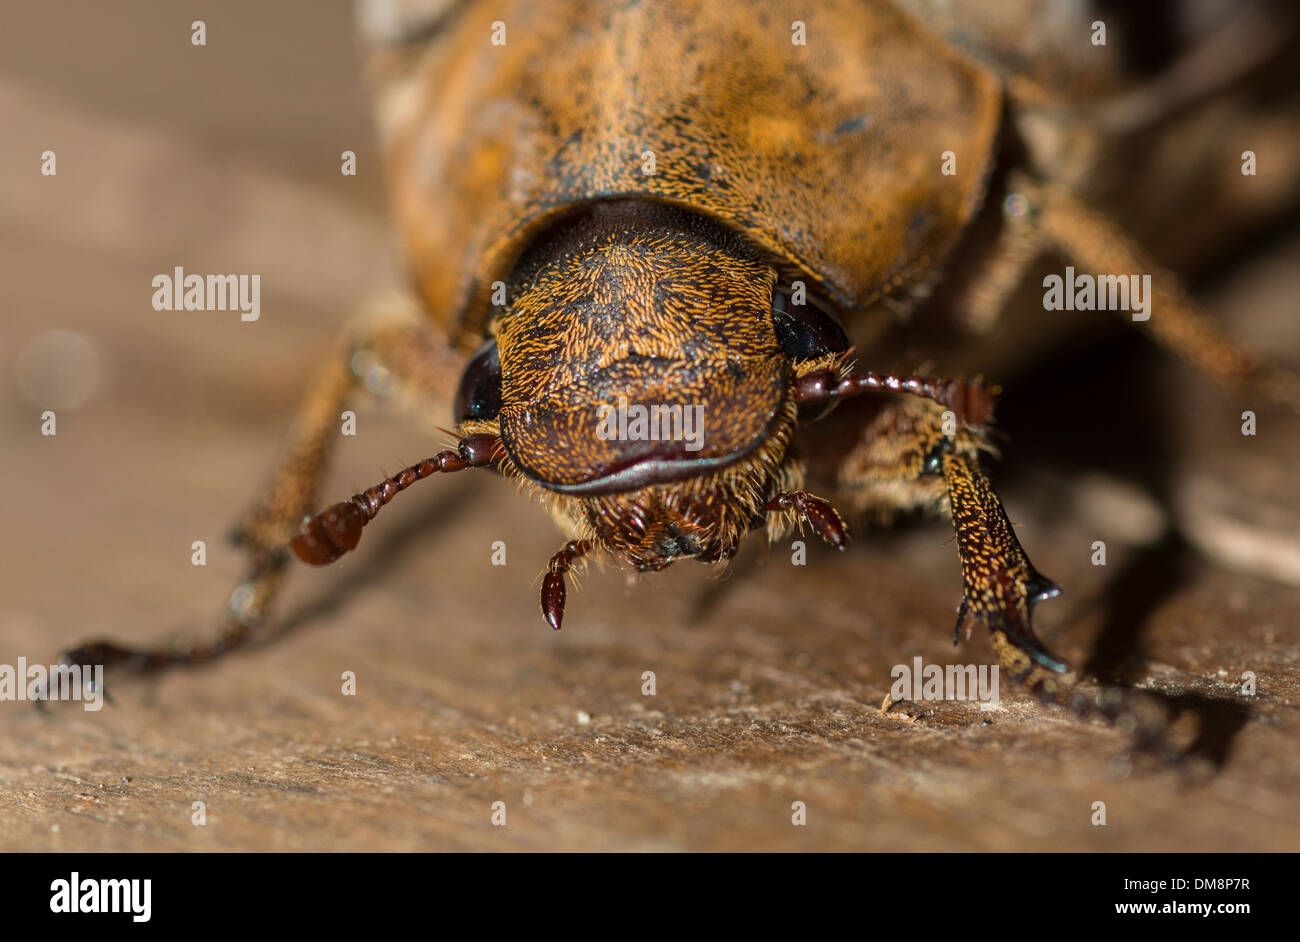 Close-up of a female coconut beetle crawling on the floor - Stock Image